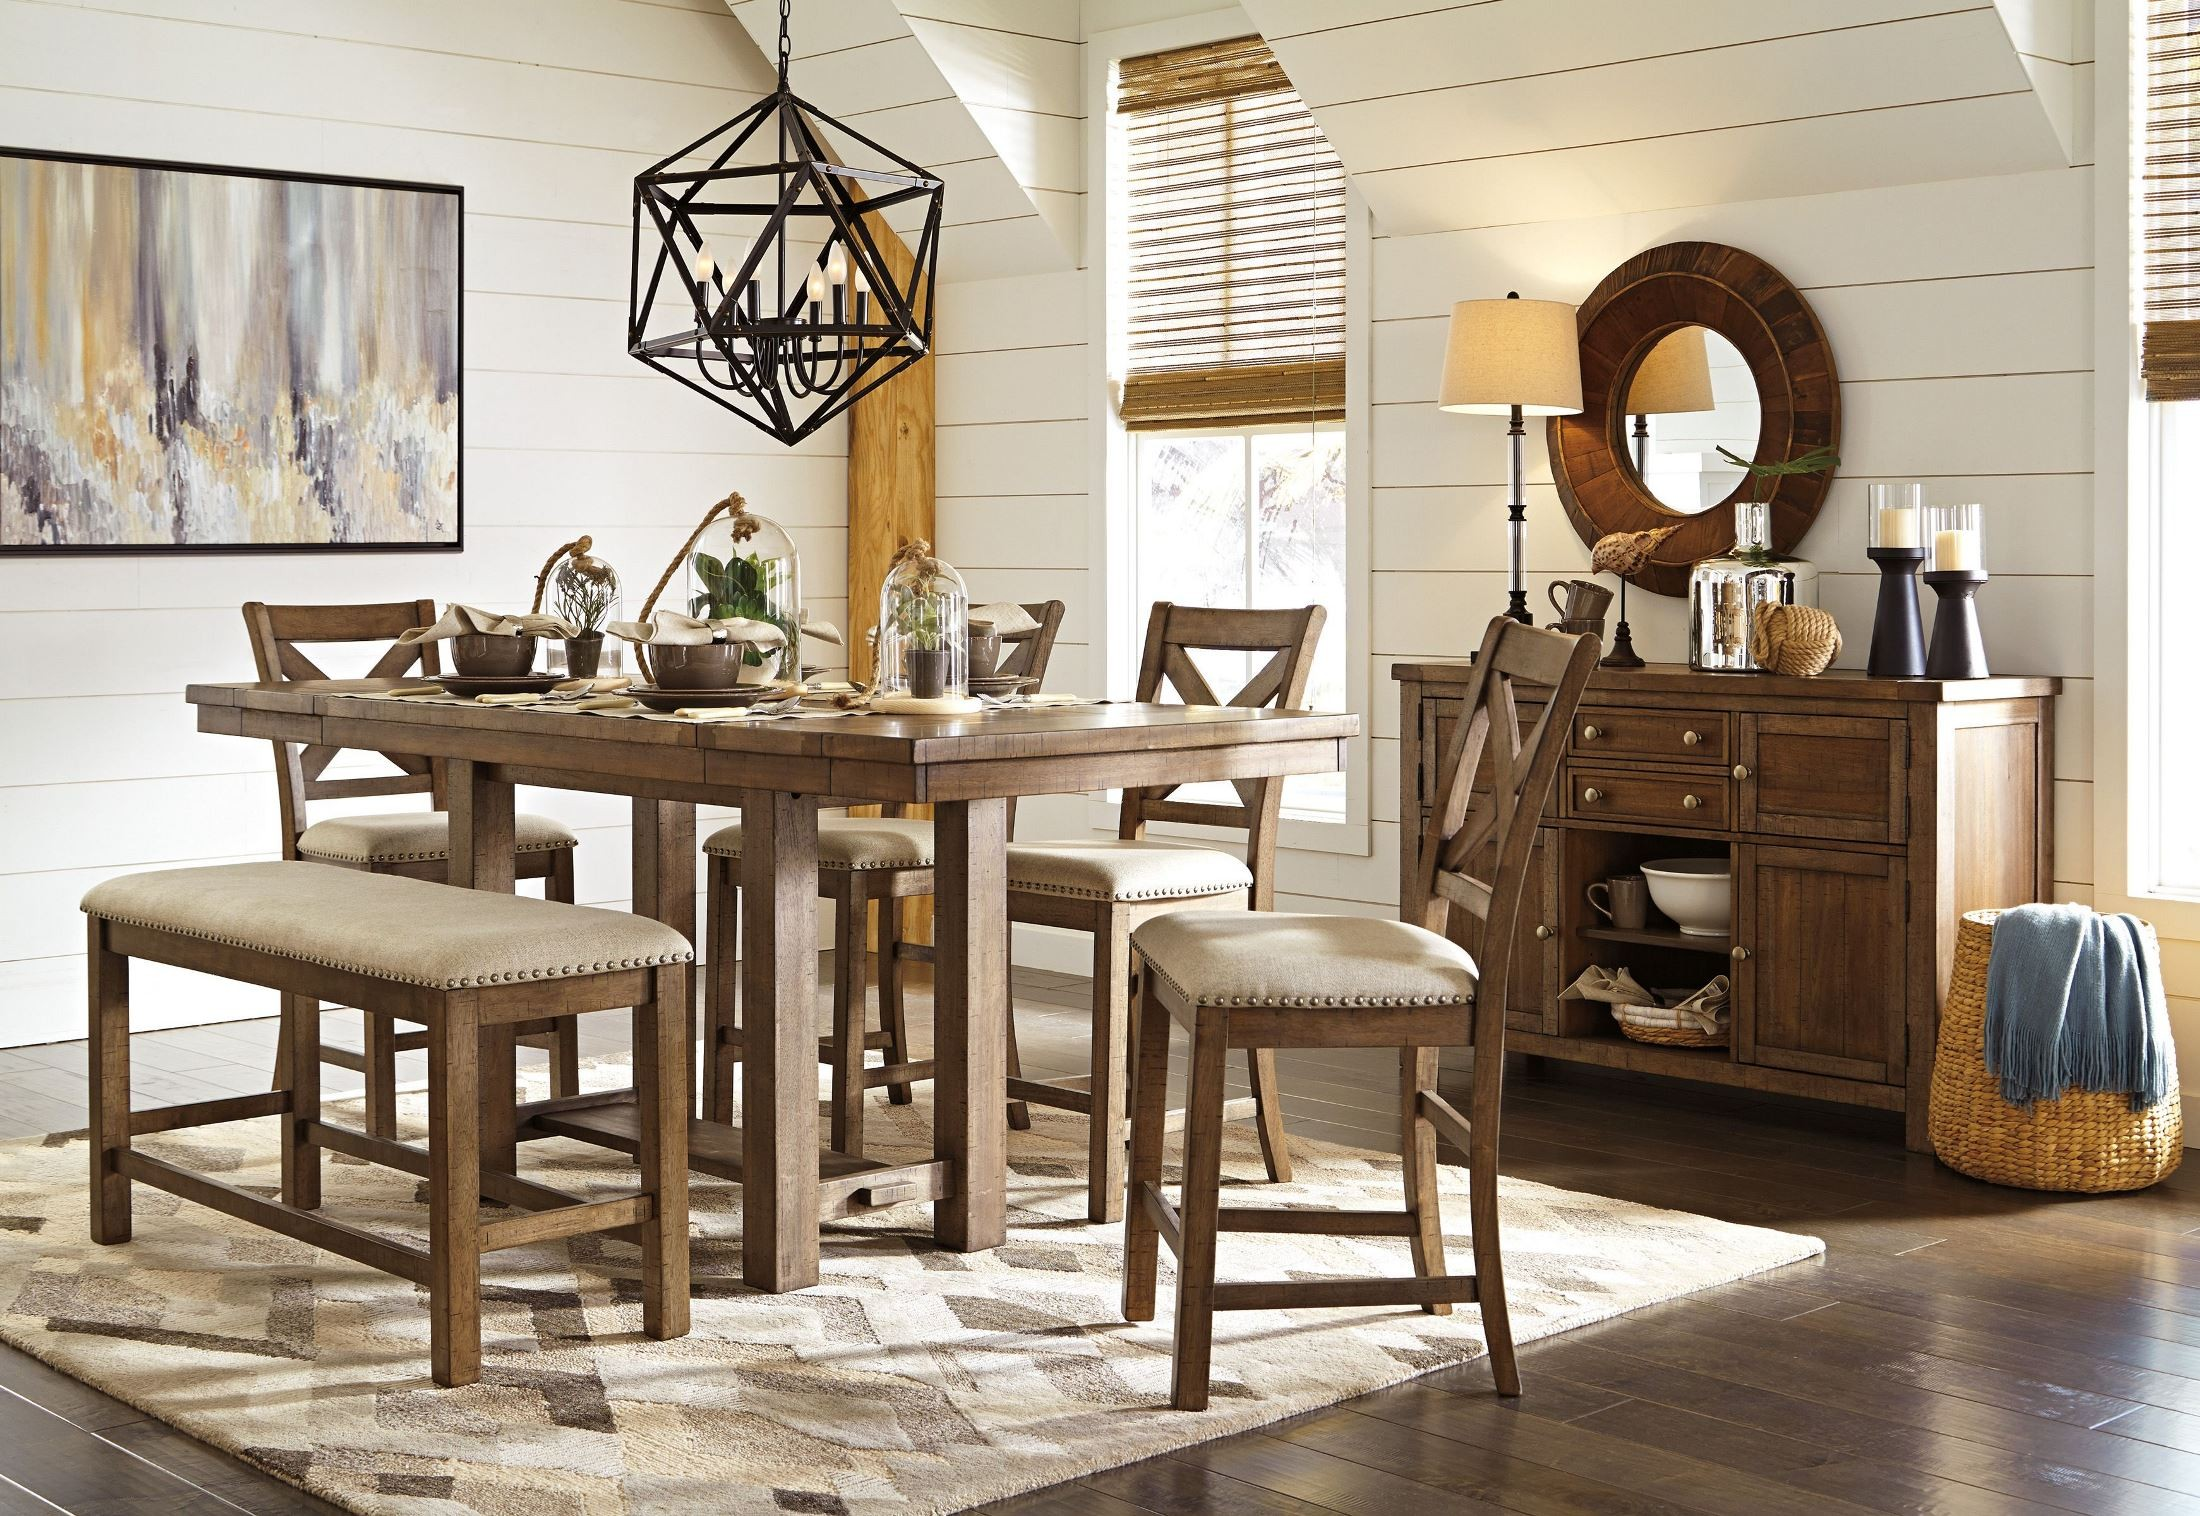 Moriville Gray Extendable Counter Height Dining Room Set D631 32 Ashley